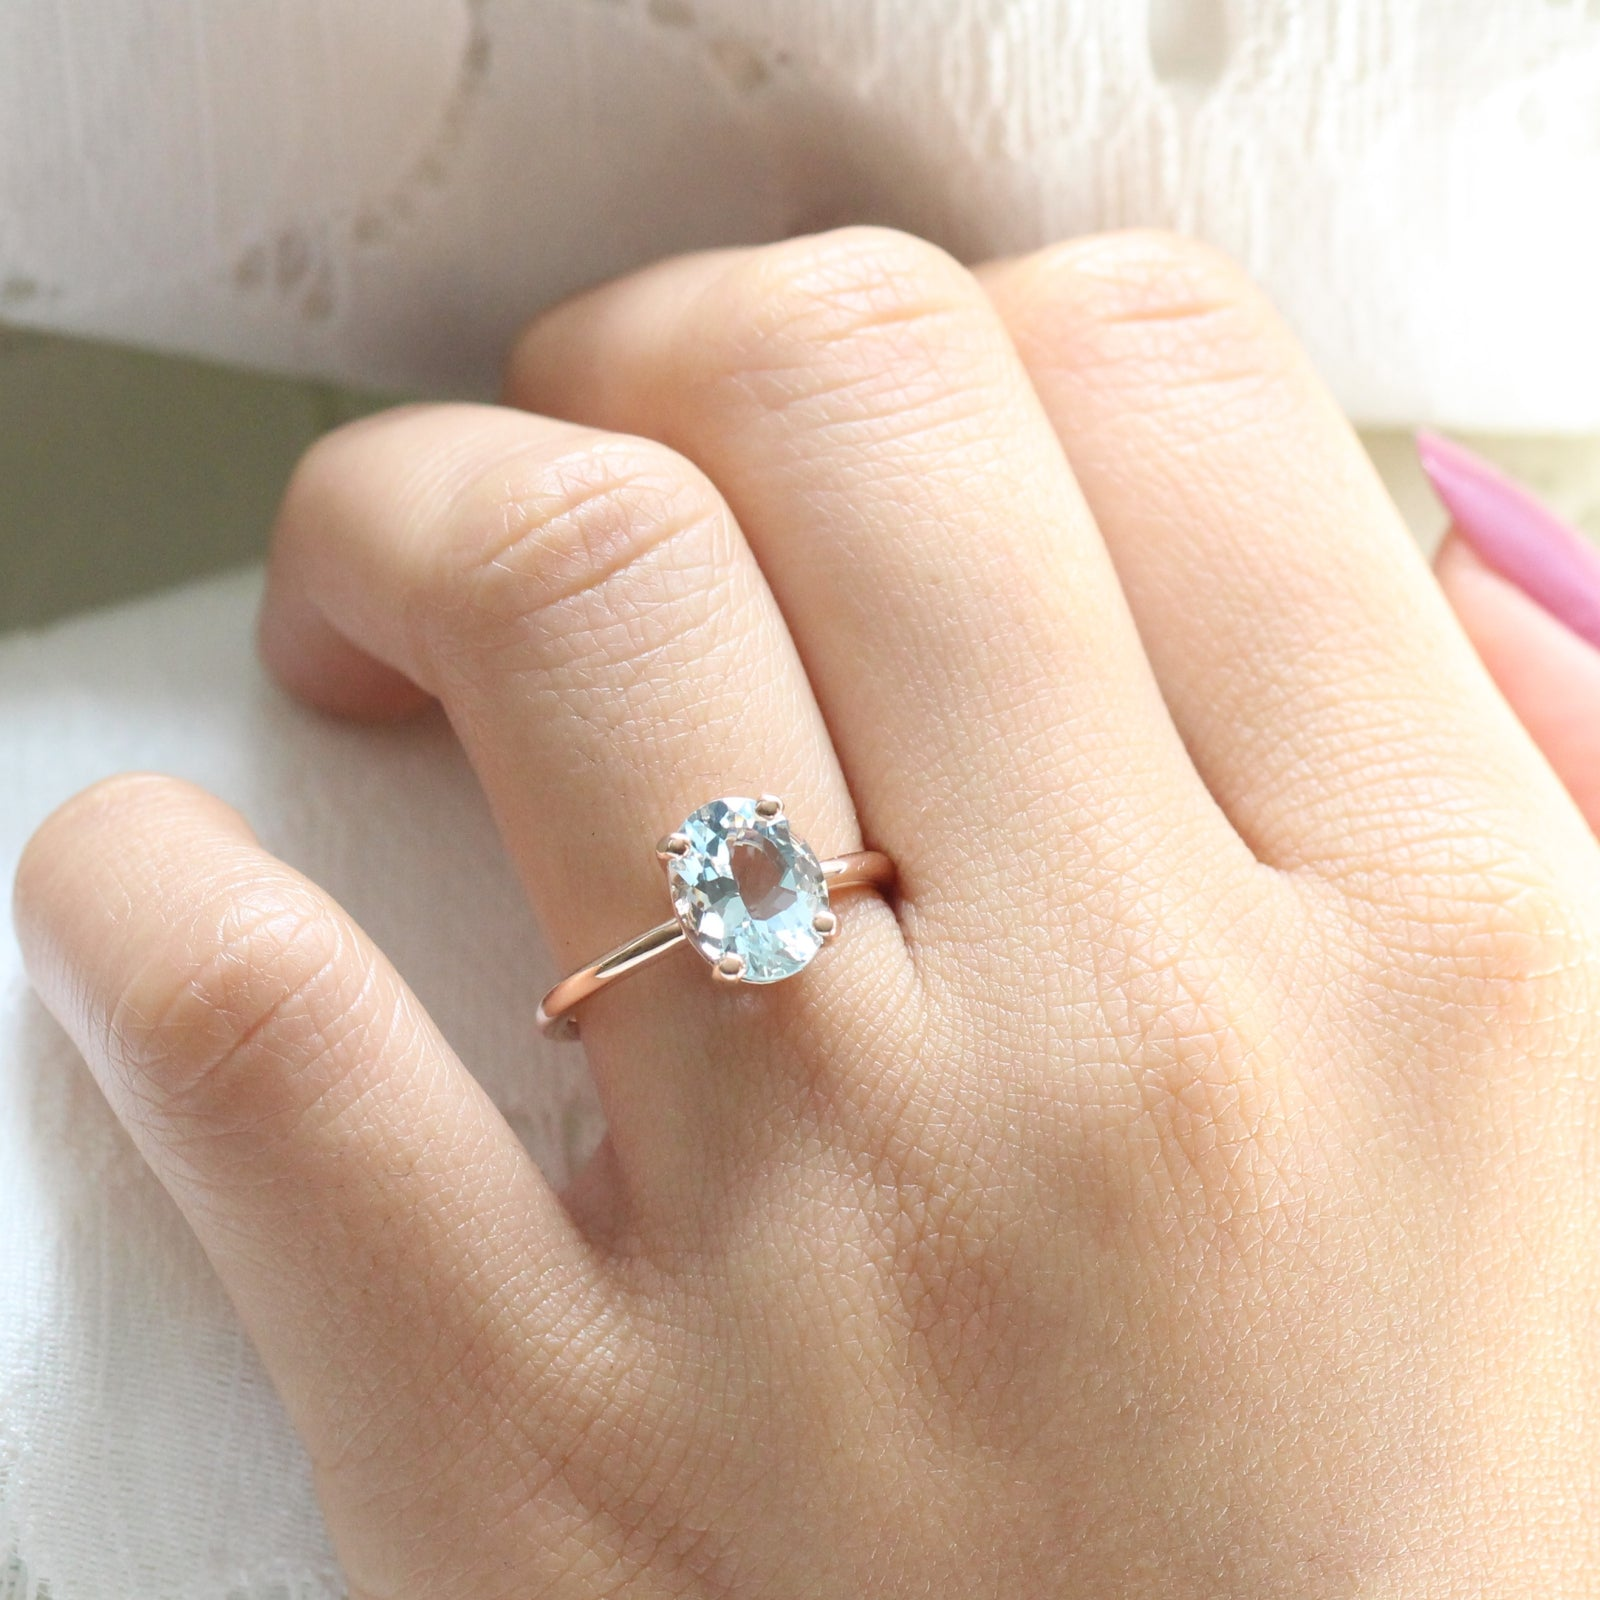 Oval Aquamarine Ring In 14k Rose Gold Low Profile